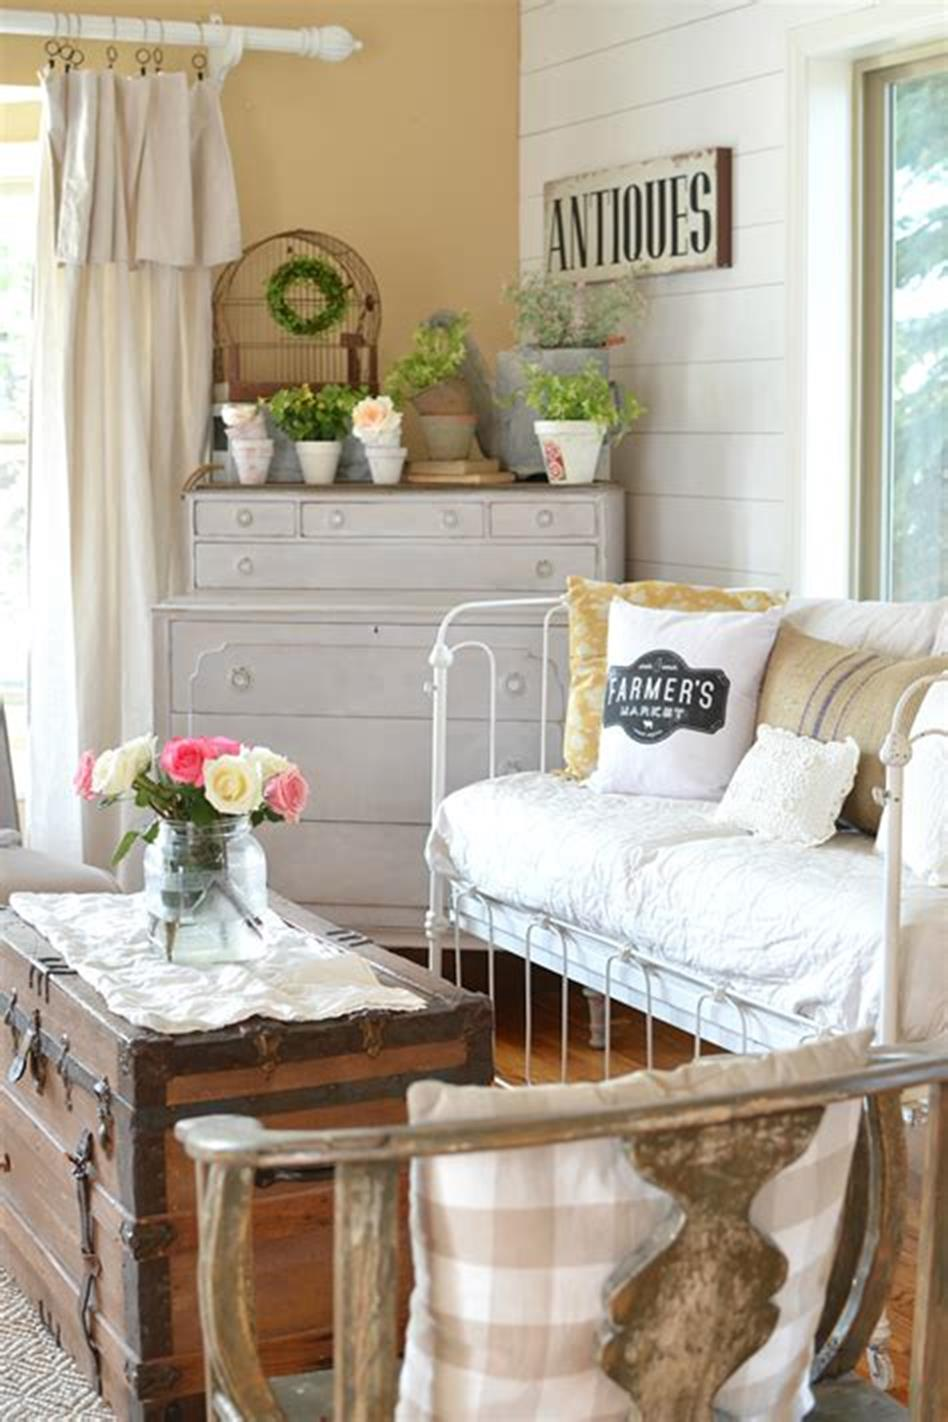 37 Beautiful Farmhouse Spring Decorating Ideas On a Budget for 2019 32